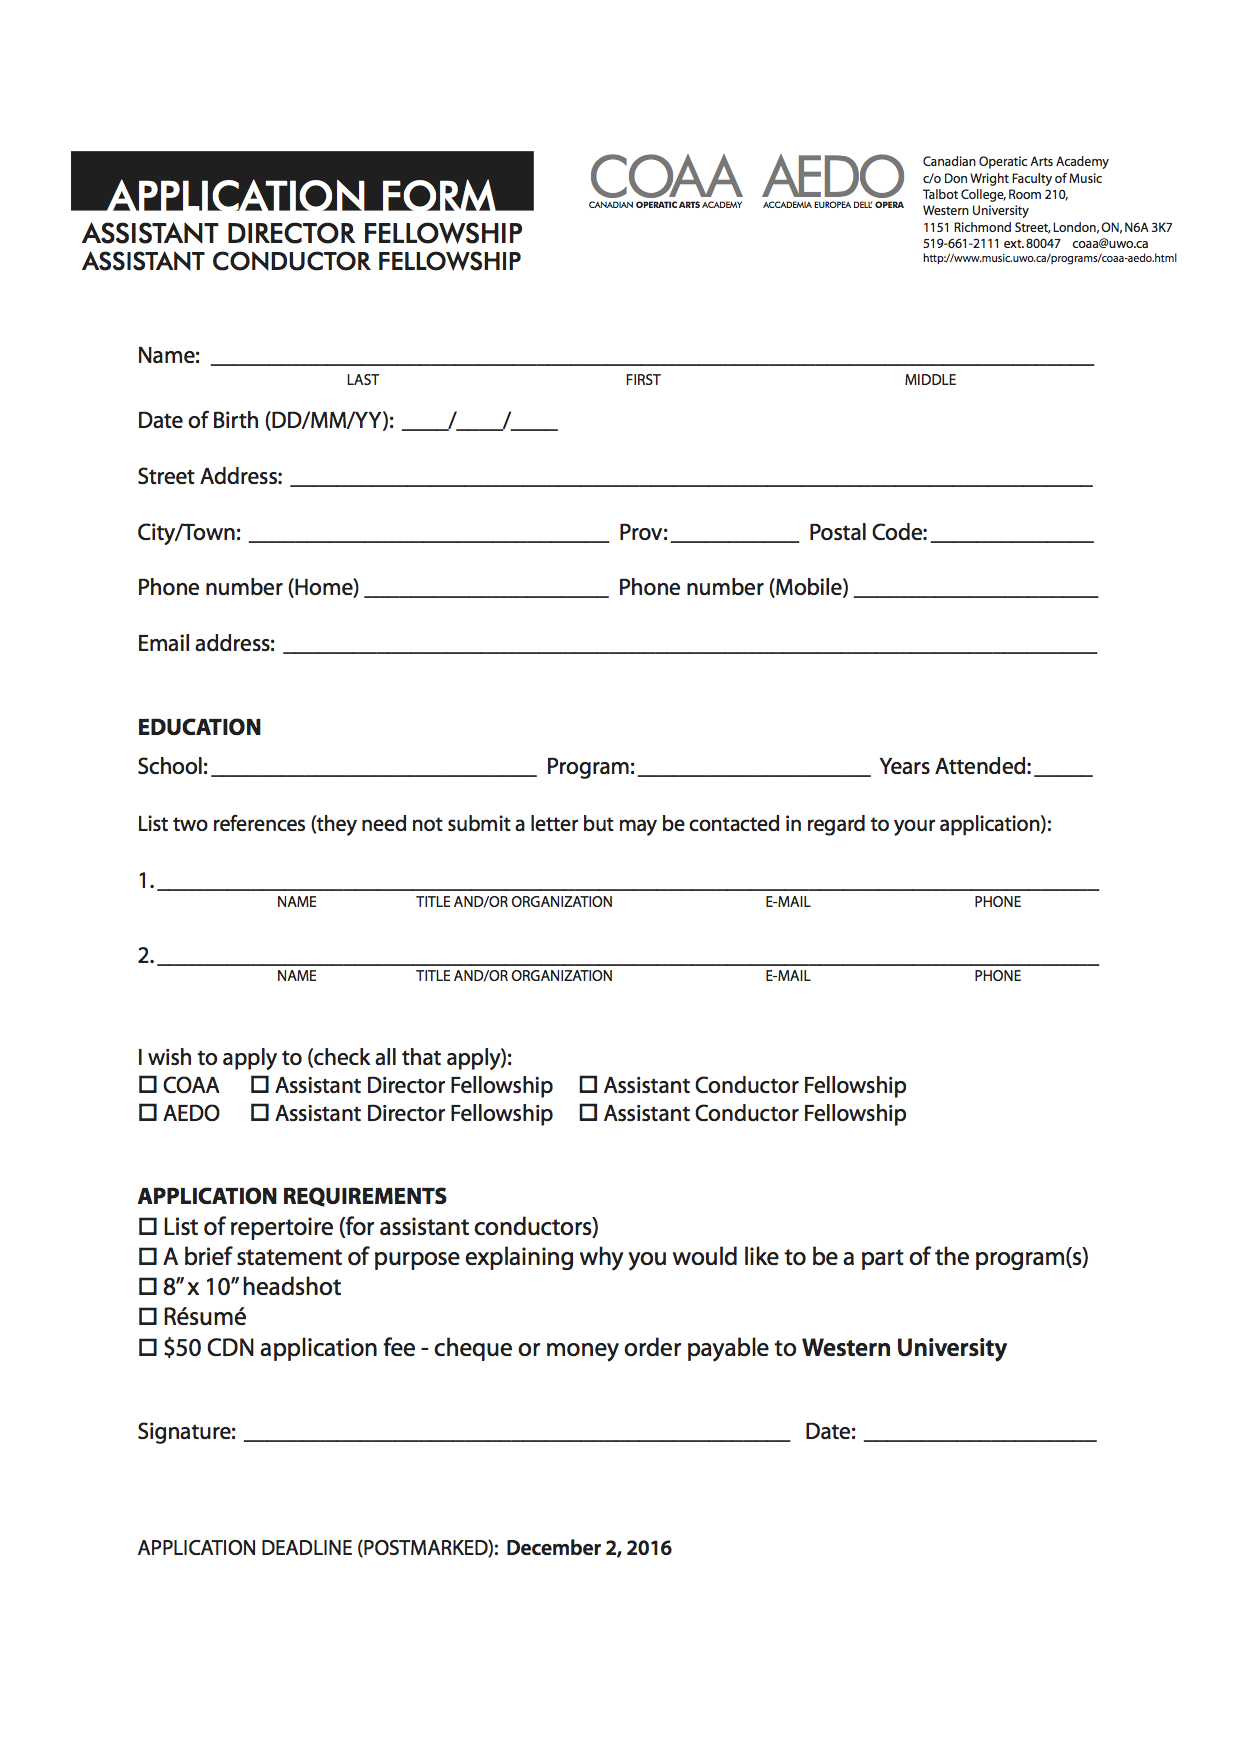 aedo costs application form